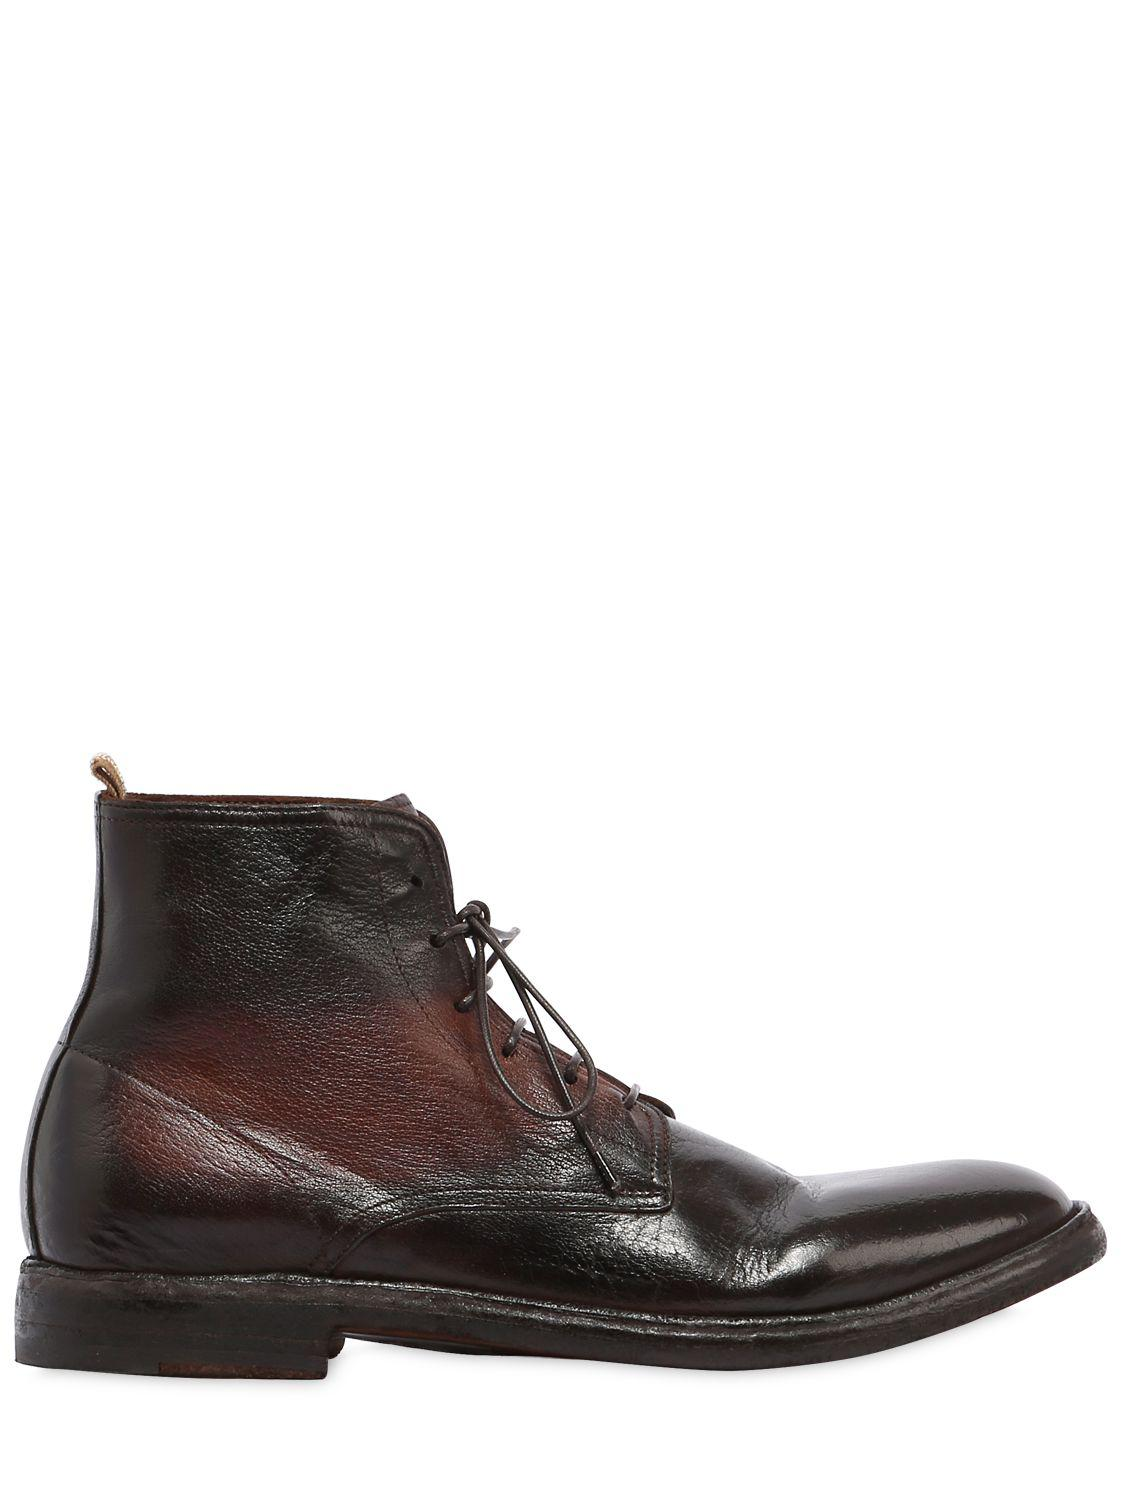 8944eb51370dd Lyst - Officine Creative Leather Lace-up Boots in Brown for Men ...